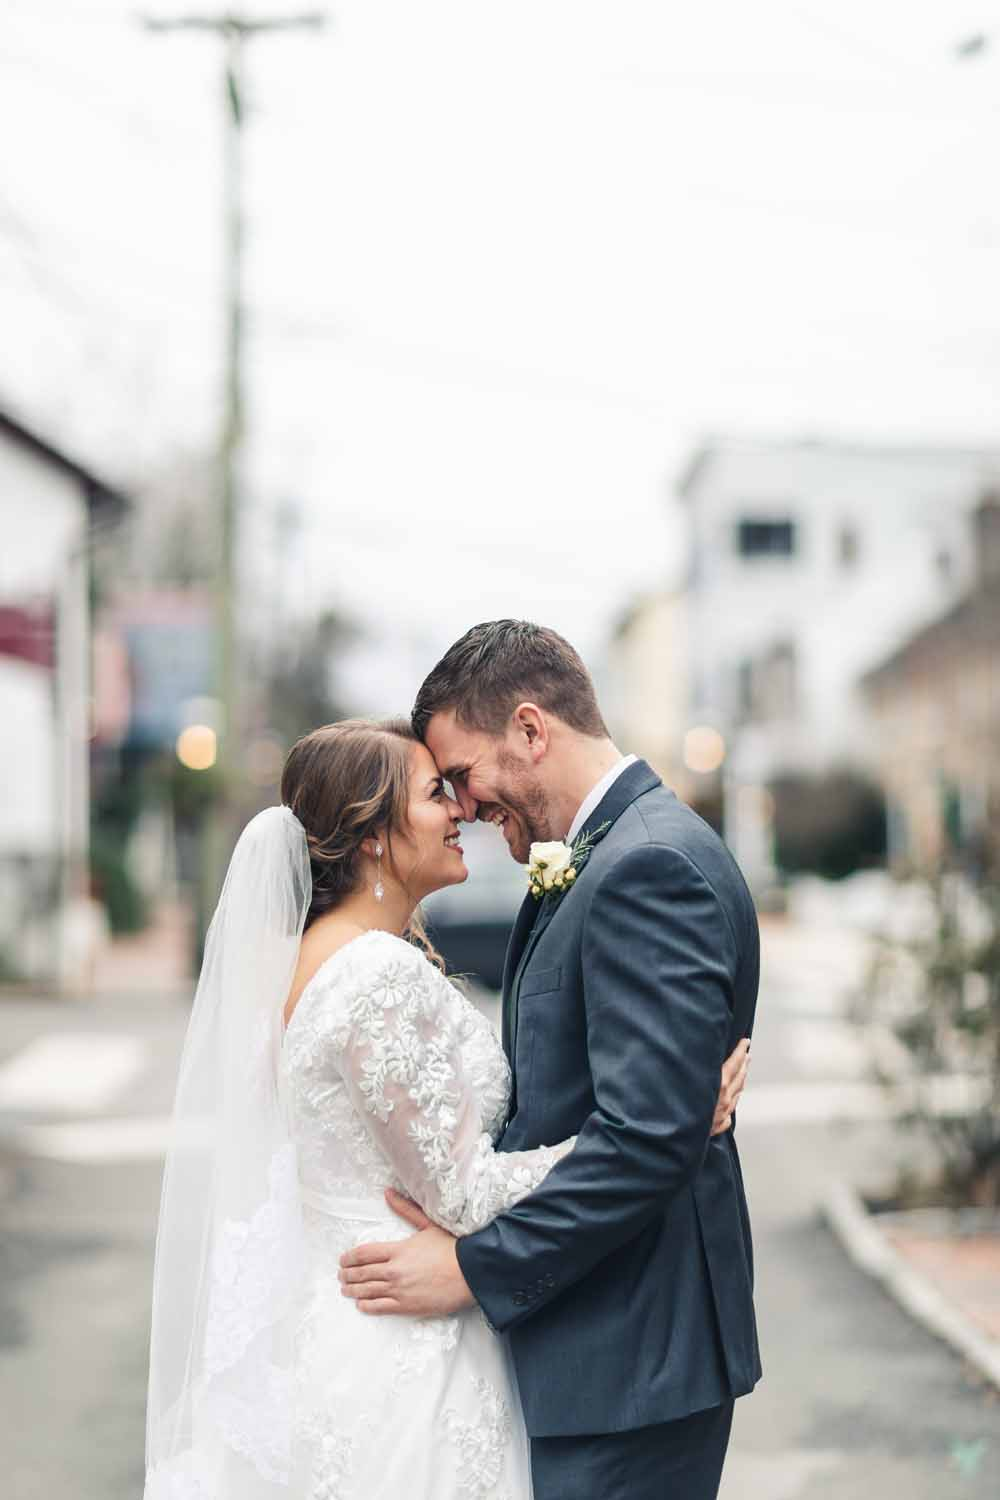 Bride and groom laughing while nose kissing